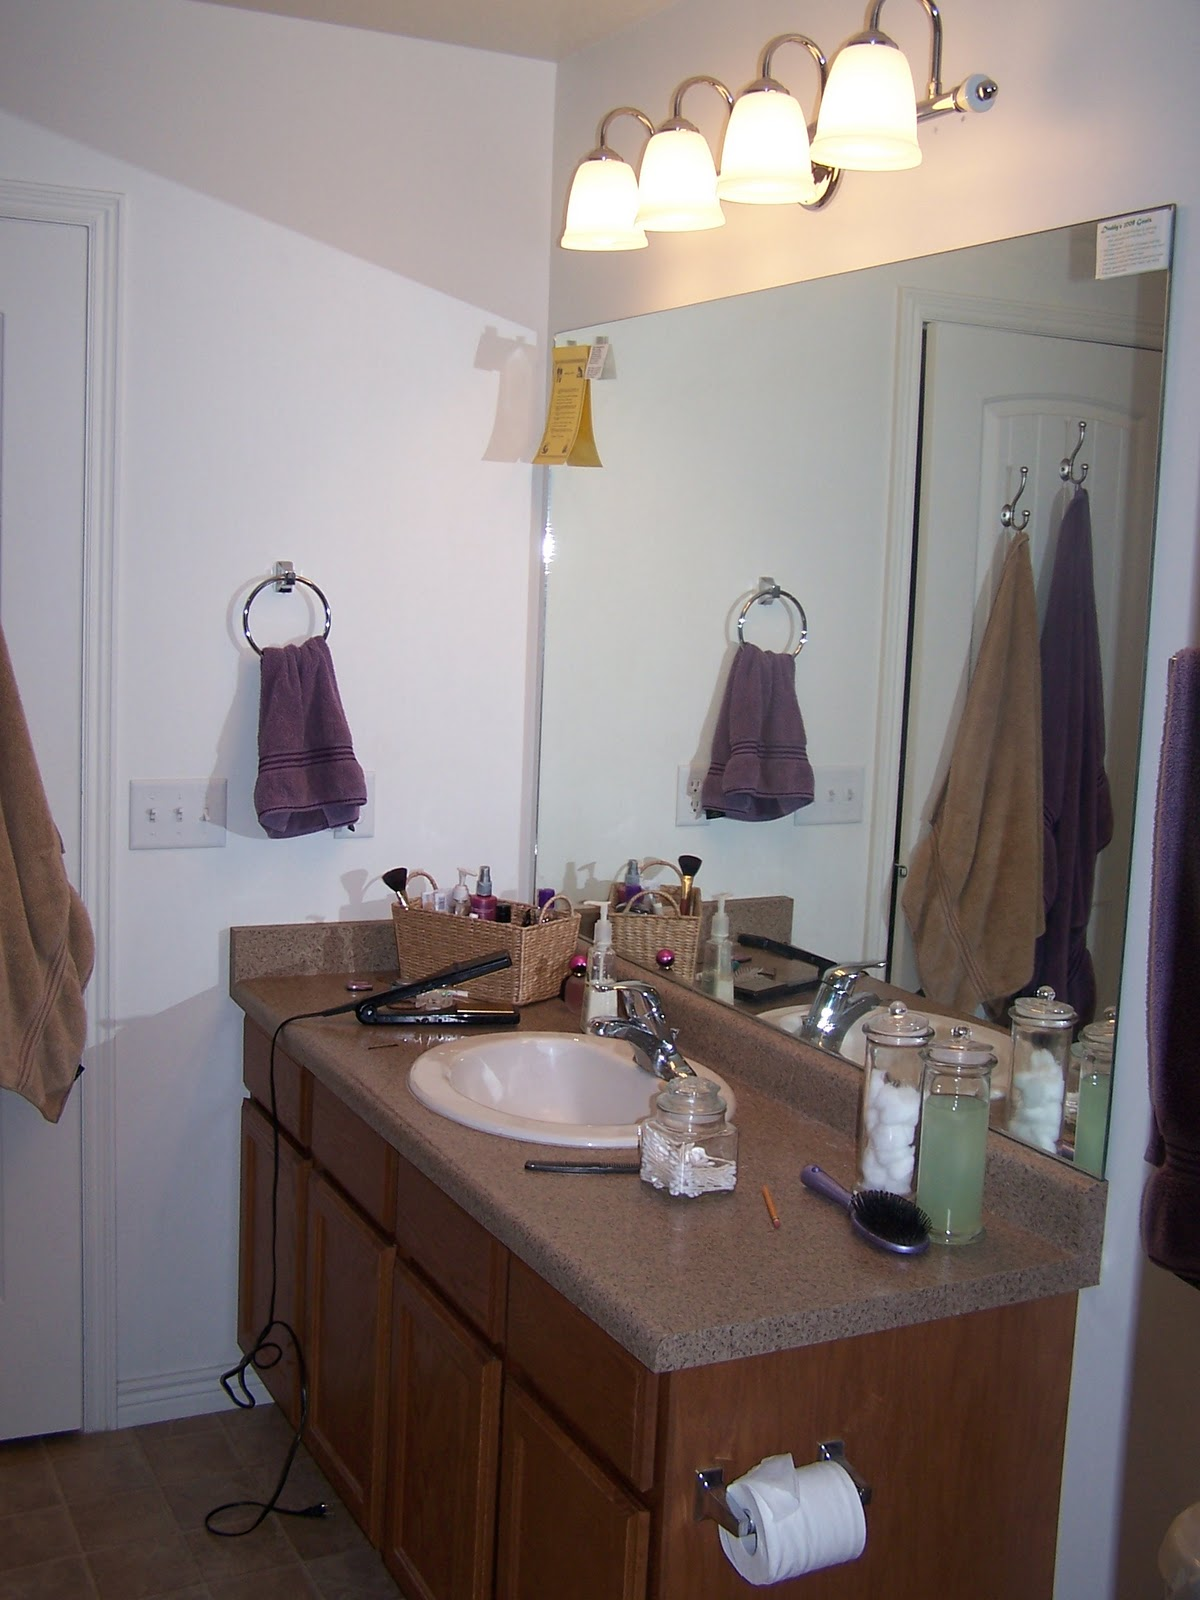 complete diy master bathroom remodel - Bathroom Remodel Kids